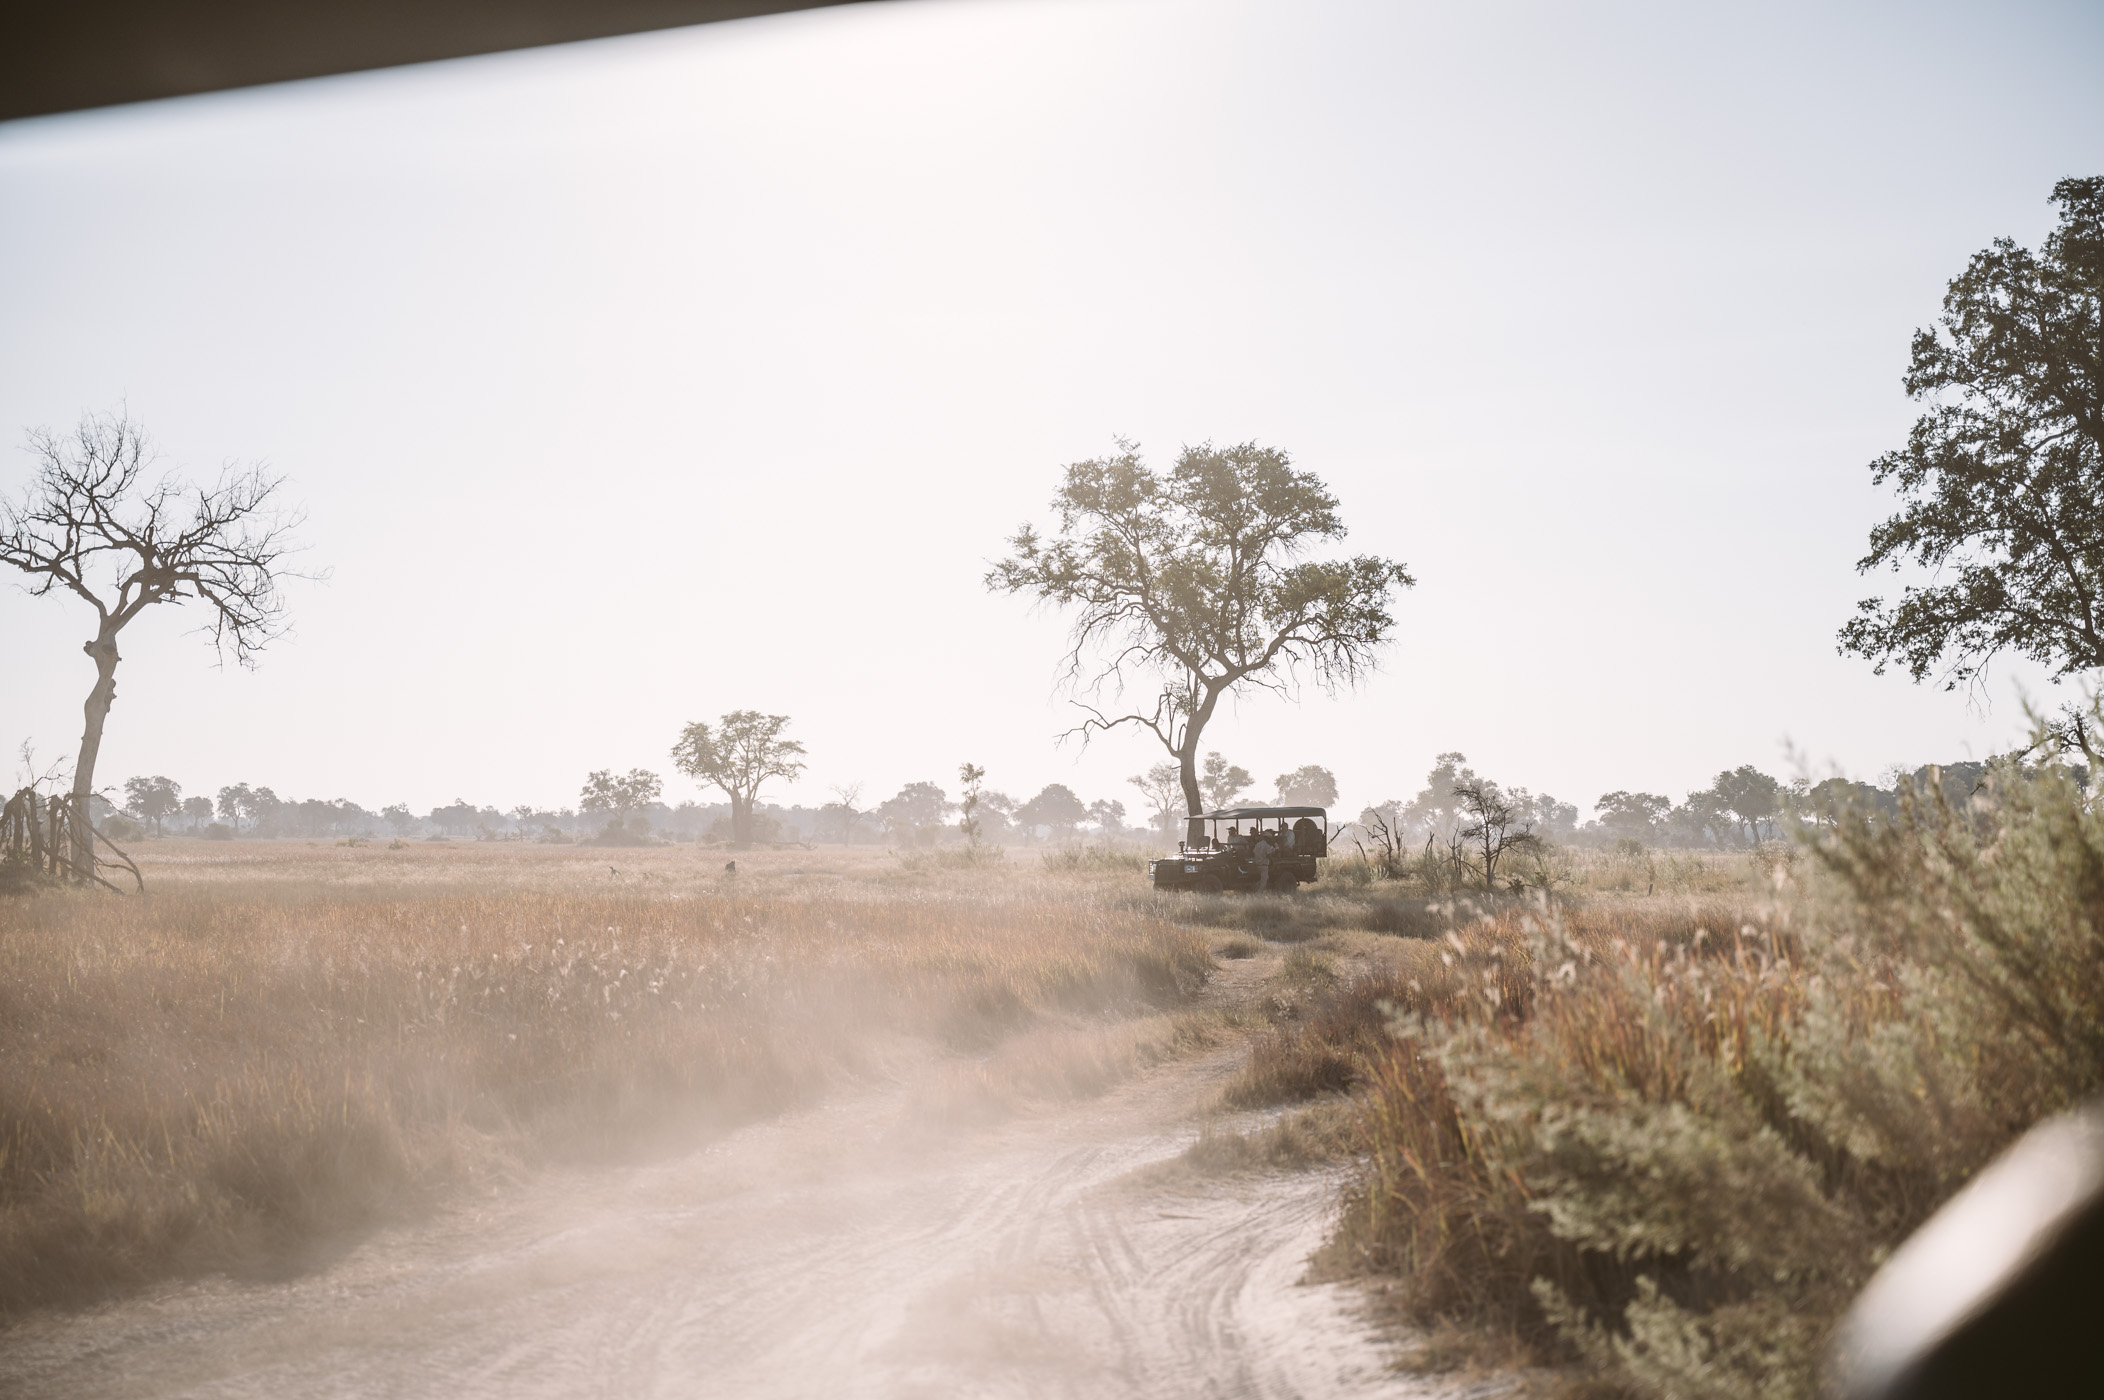 Exploring the private concession of Xaranna in the Okavango Delta